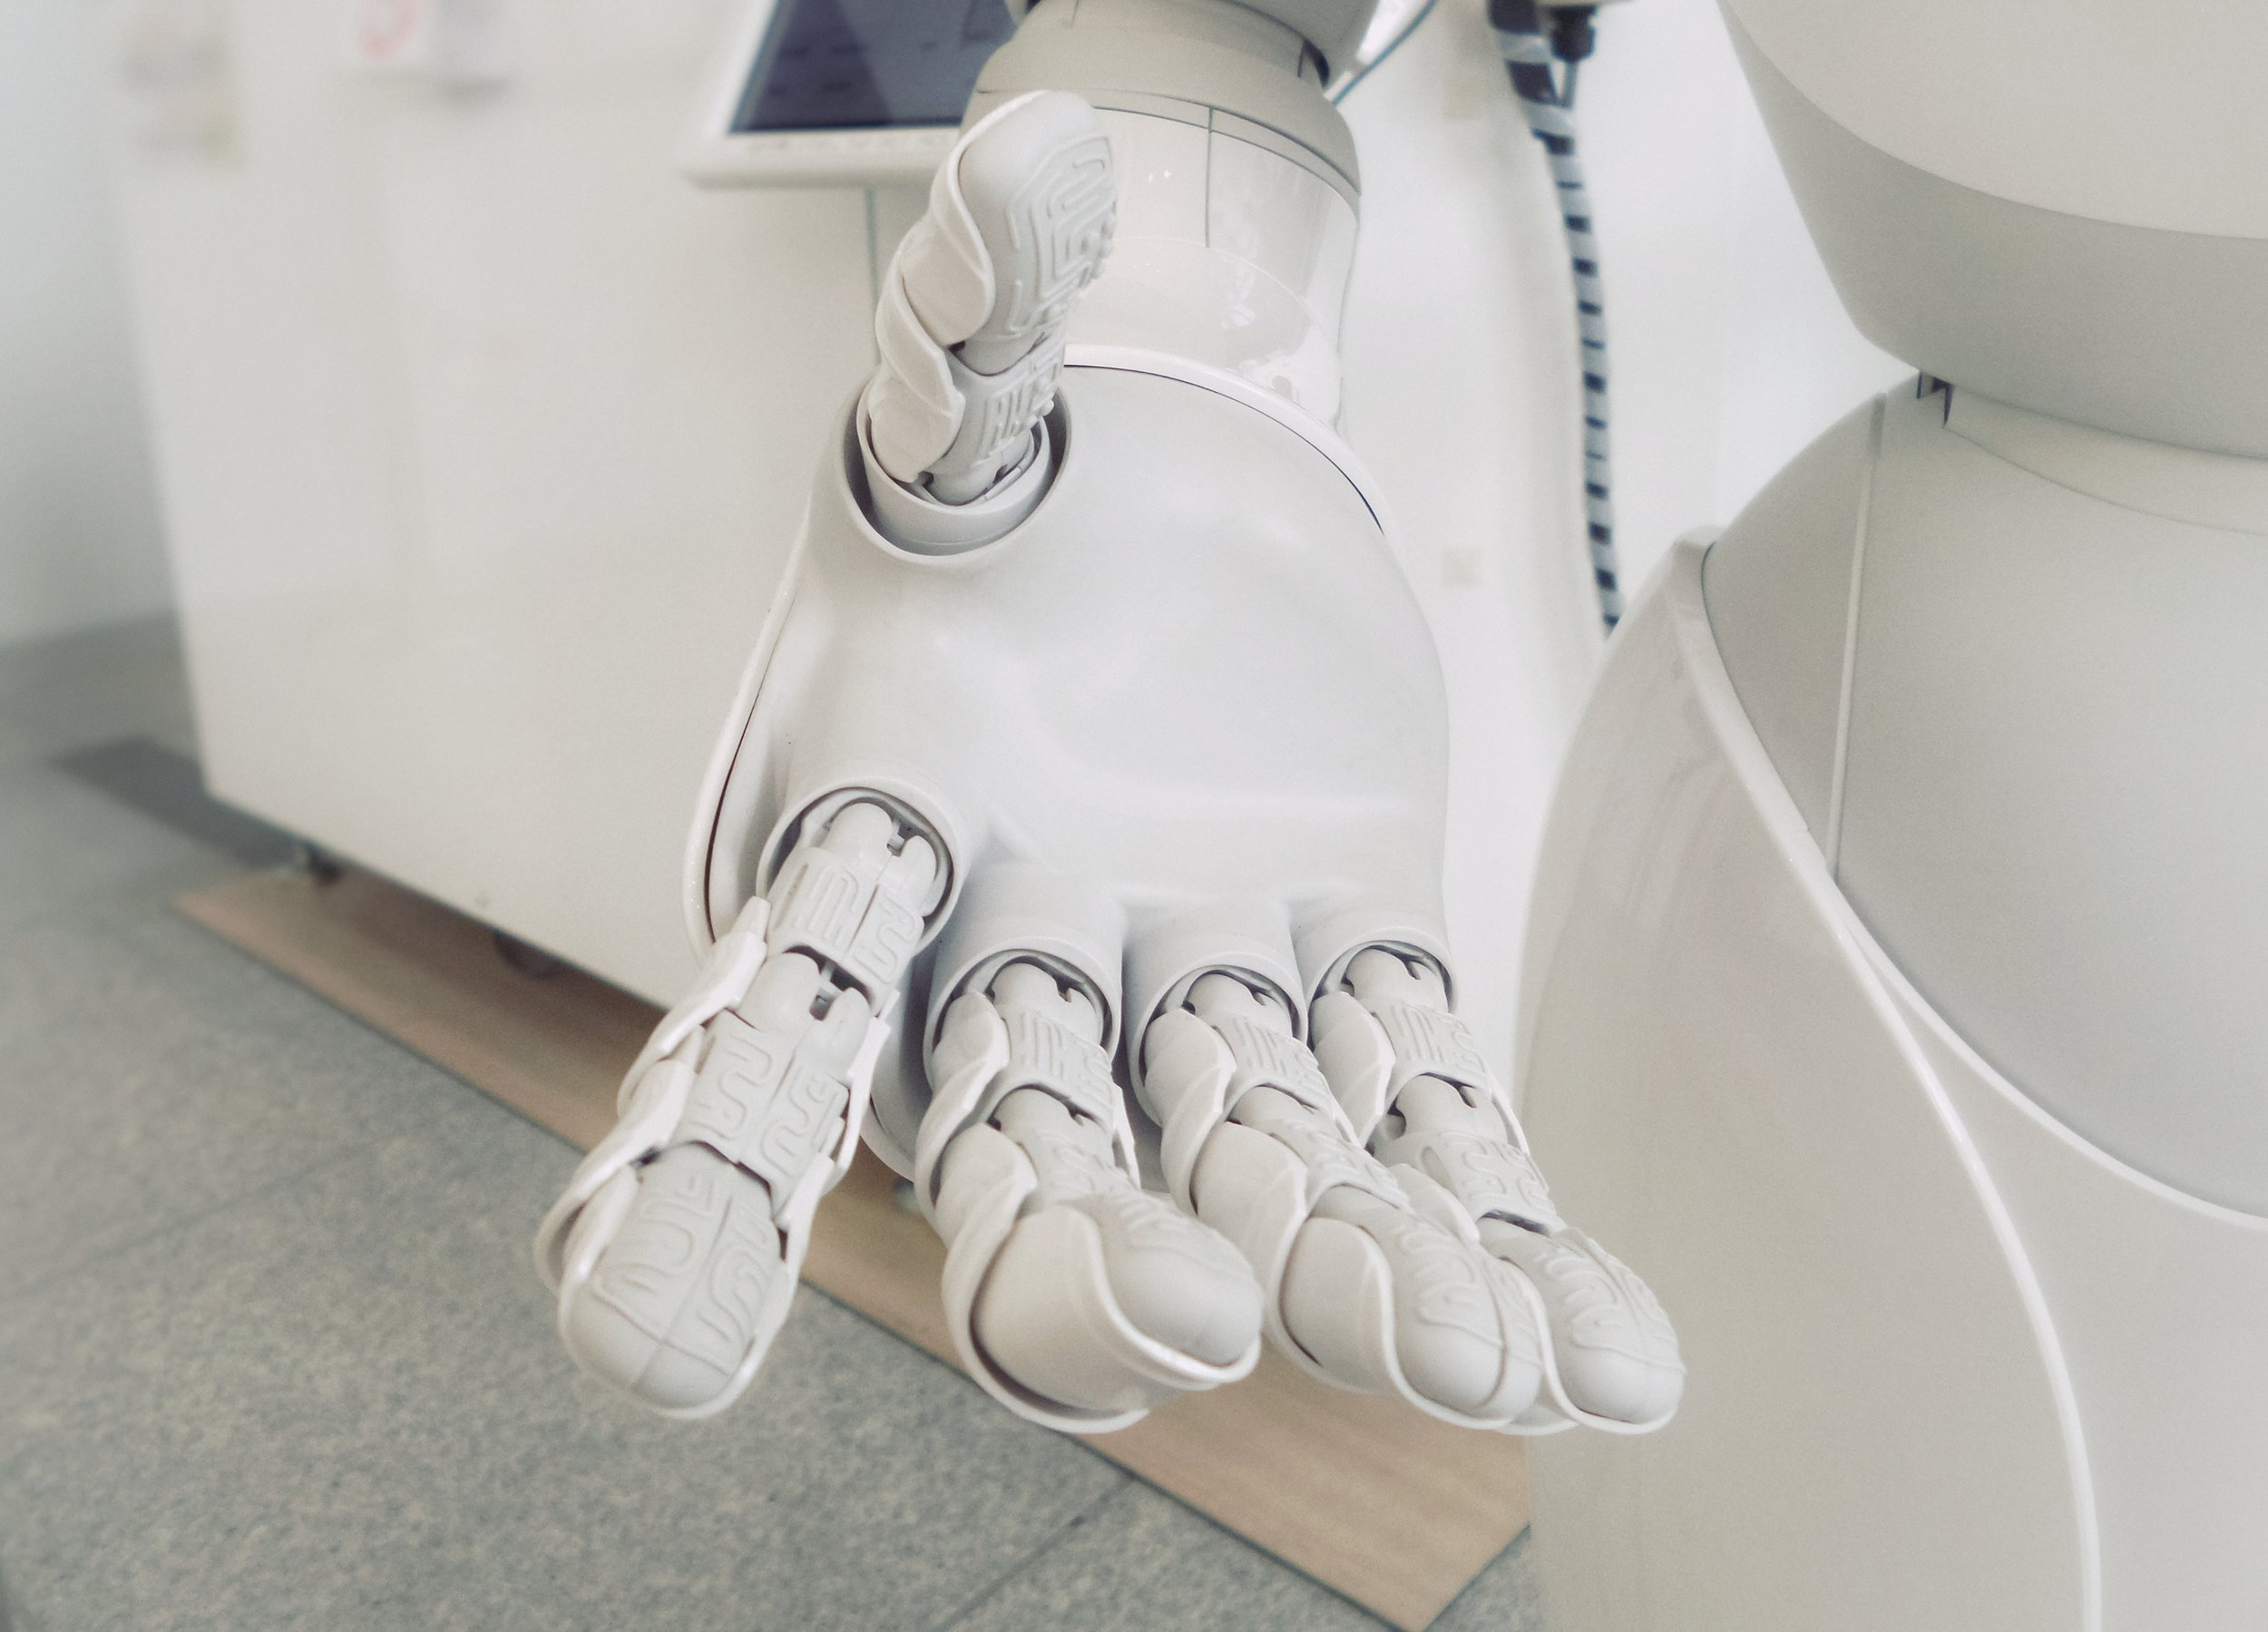 Machine Learning and AI - Game changer in MDM or only buzzwords?